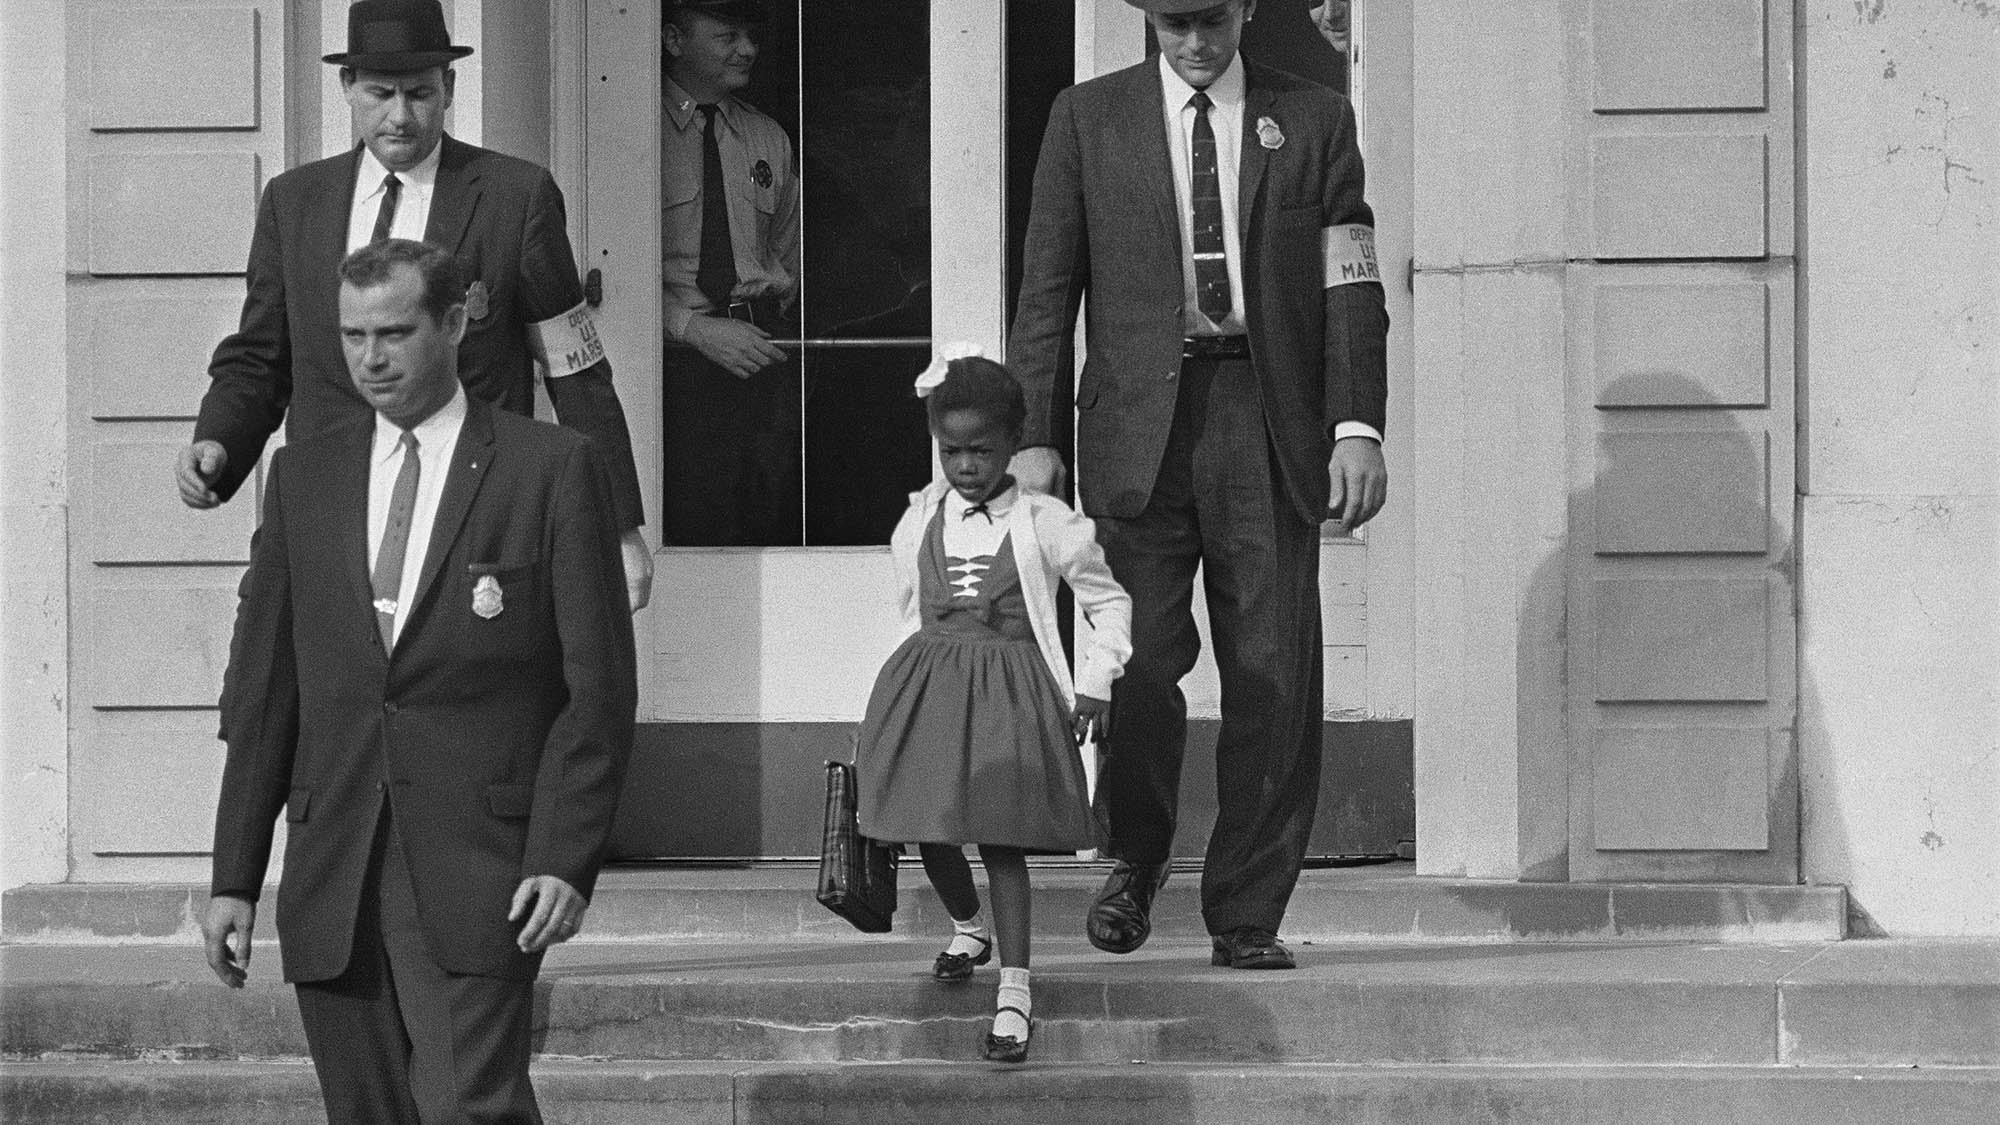 Worksheets Ruby Bridges Worksheets ruby bridges a simple act of courage common core lesson plan for kindergarten to grade 2 scholastic